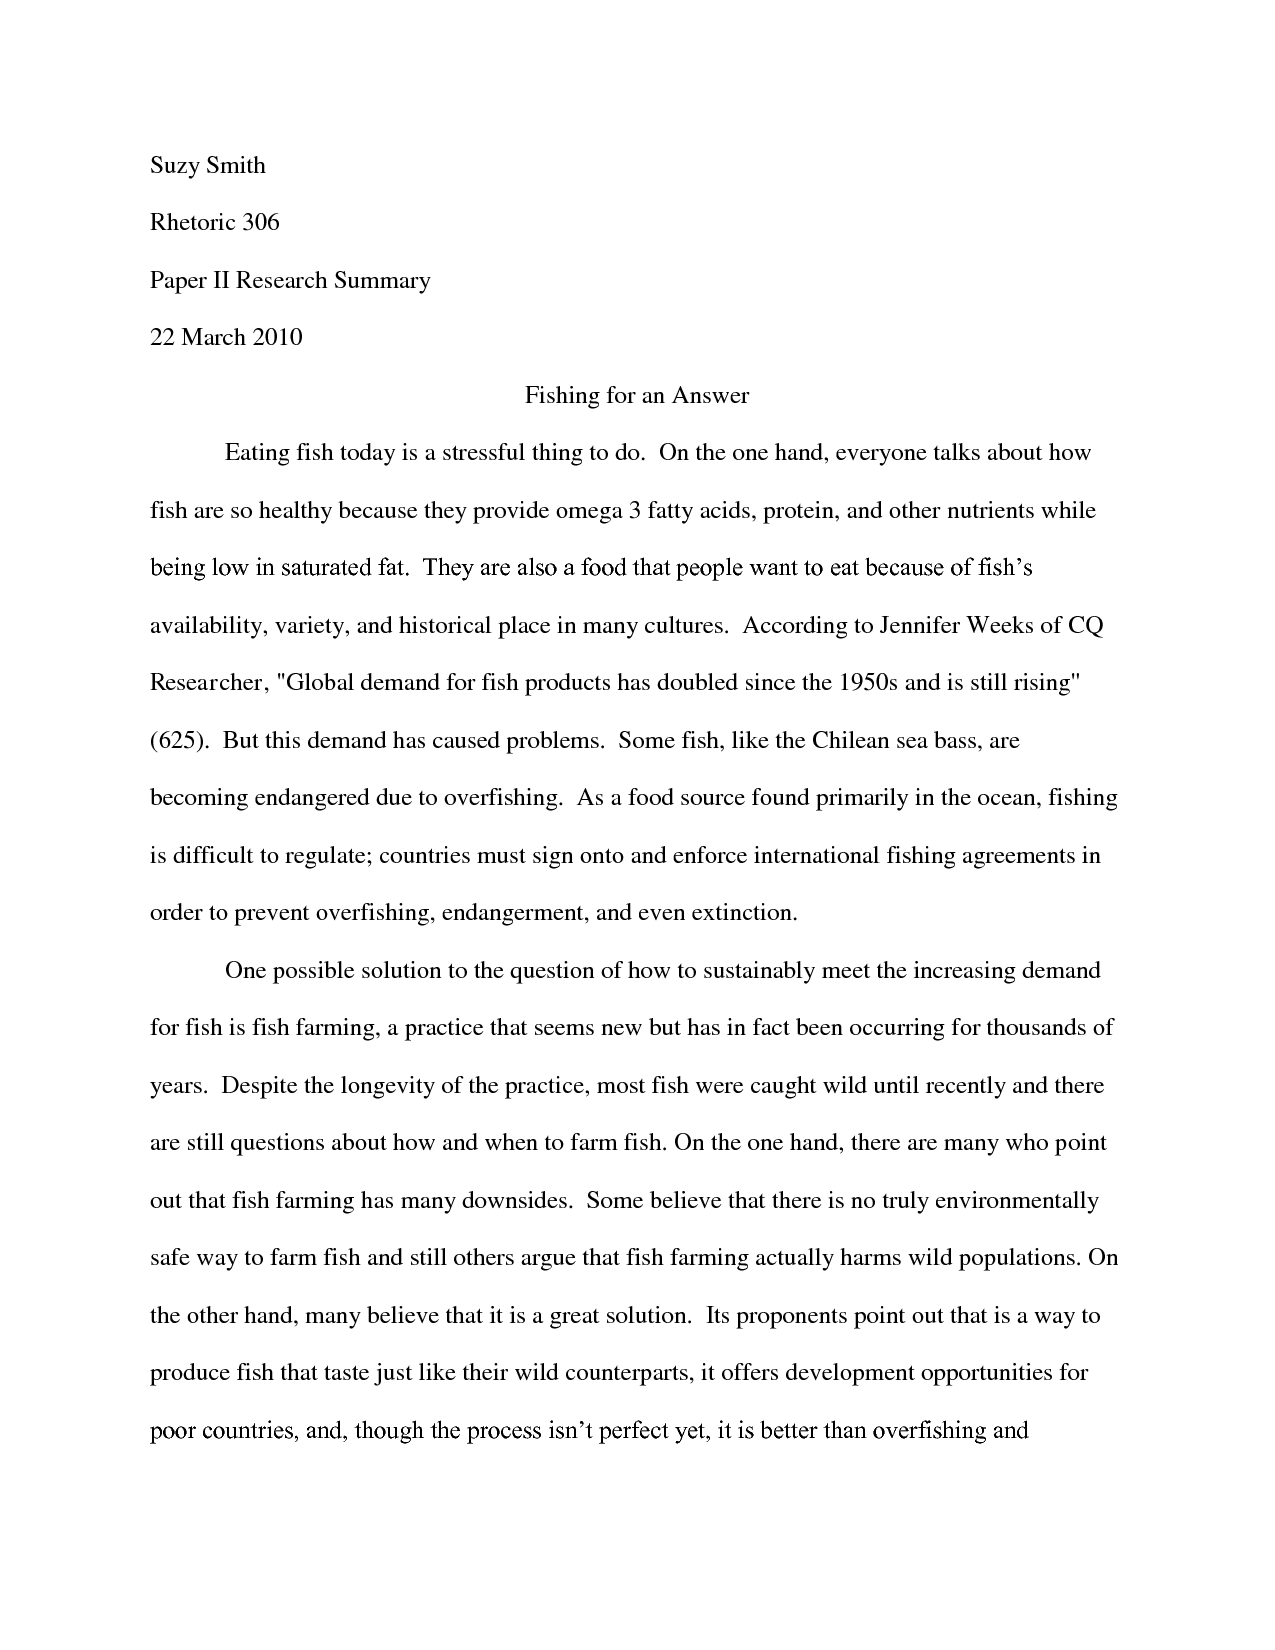 010 Research Paper Summary Sample 551059 How To Write Phenomenal A Good Conclusion And Recommendation Of Synopsis For Full